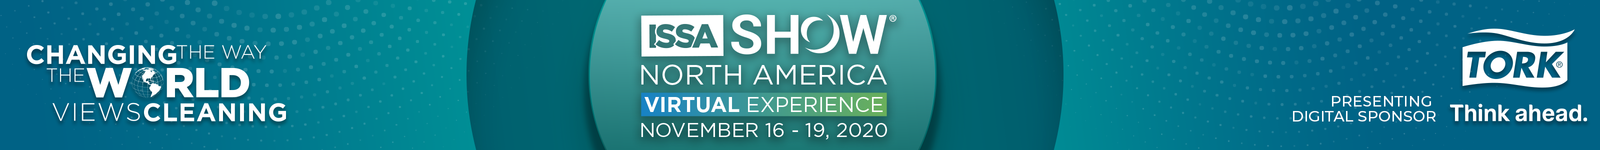 ISSA Show North America Virtual 2020 logo